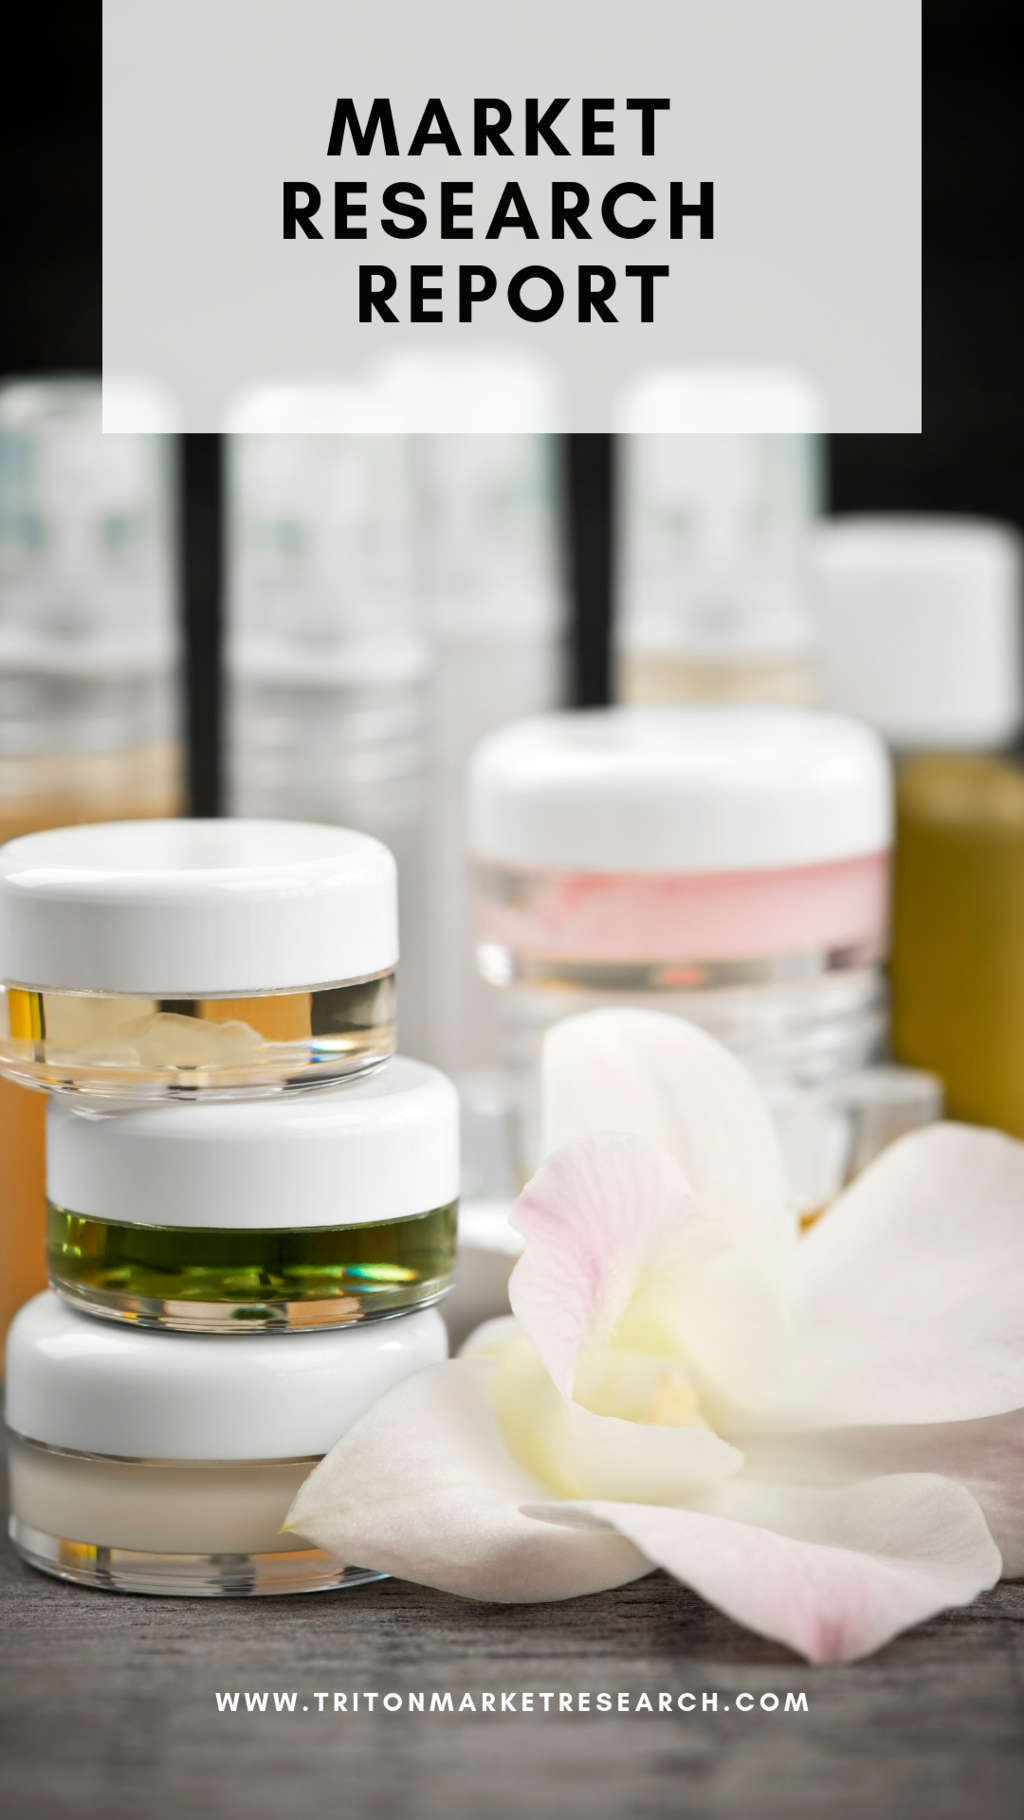 ASIA-PACIFIC CBD SKIN CARE MARKET 2019-2028